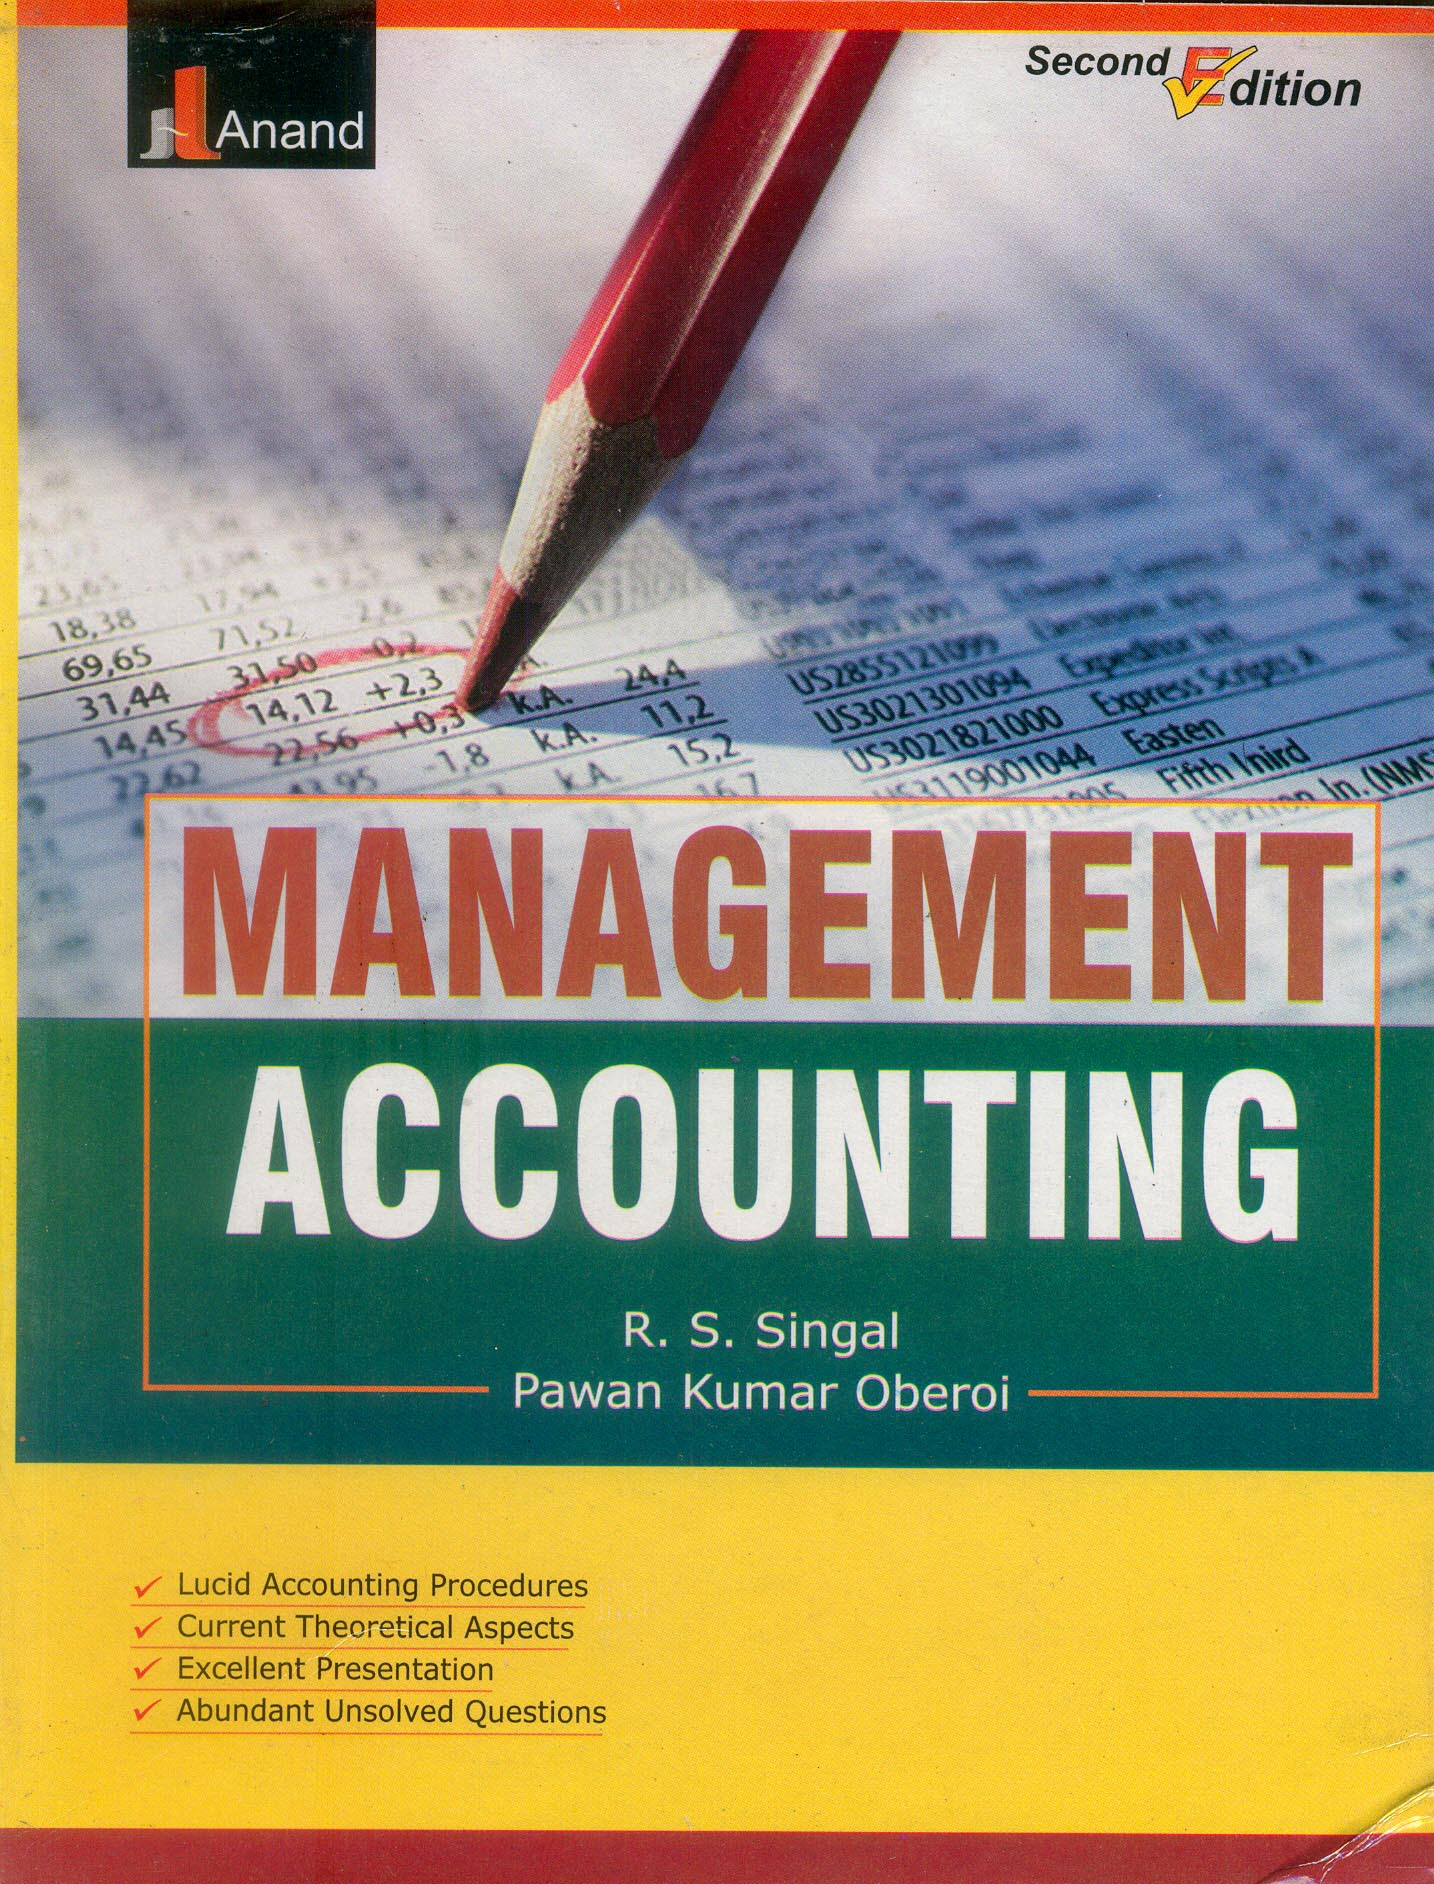 MB202 MANAGEMENT ACCOUNTING